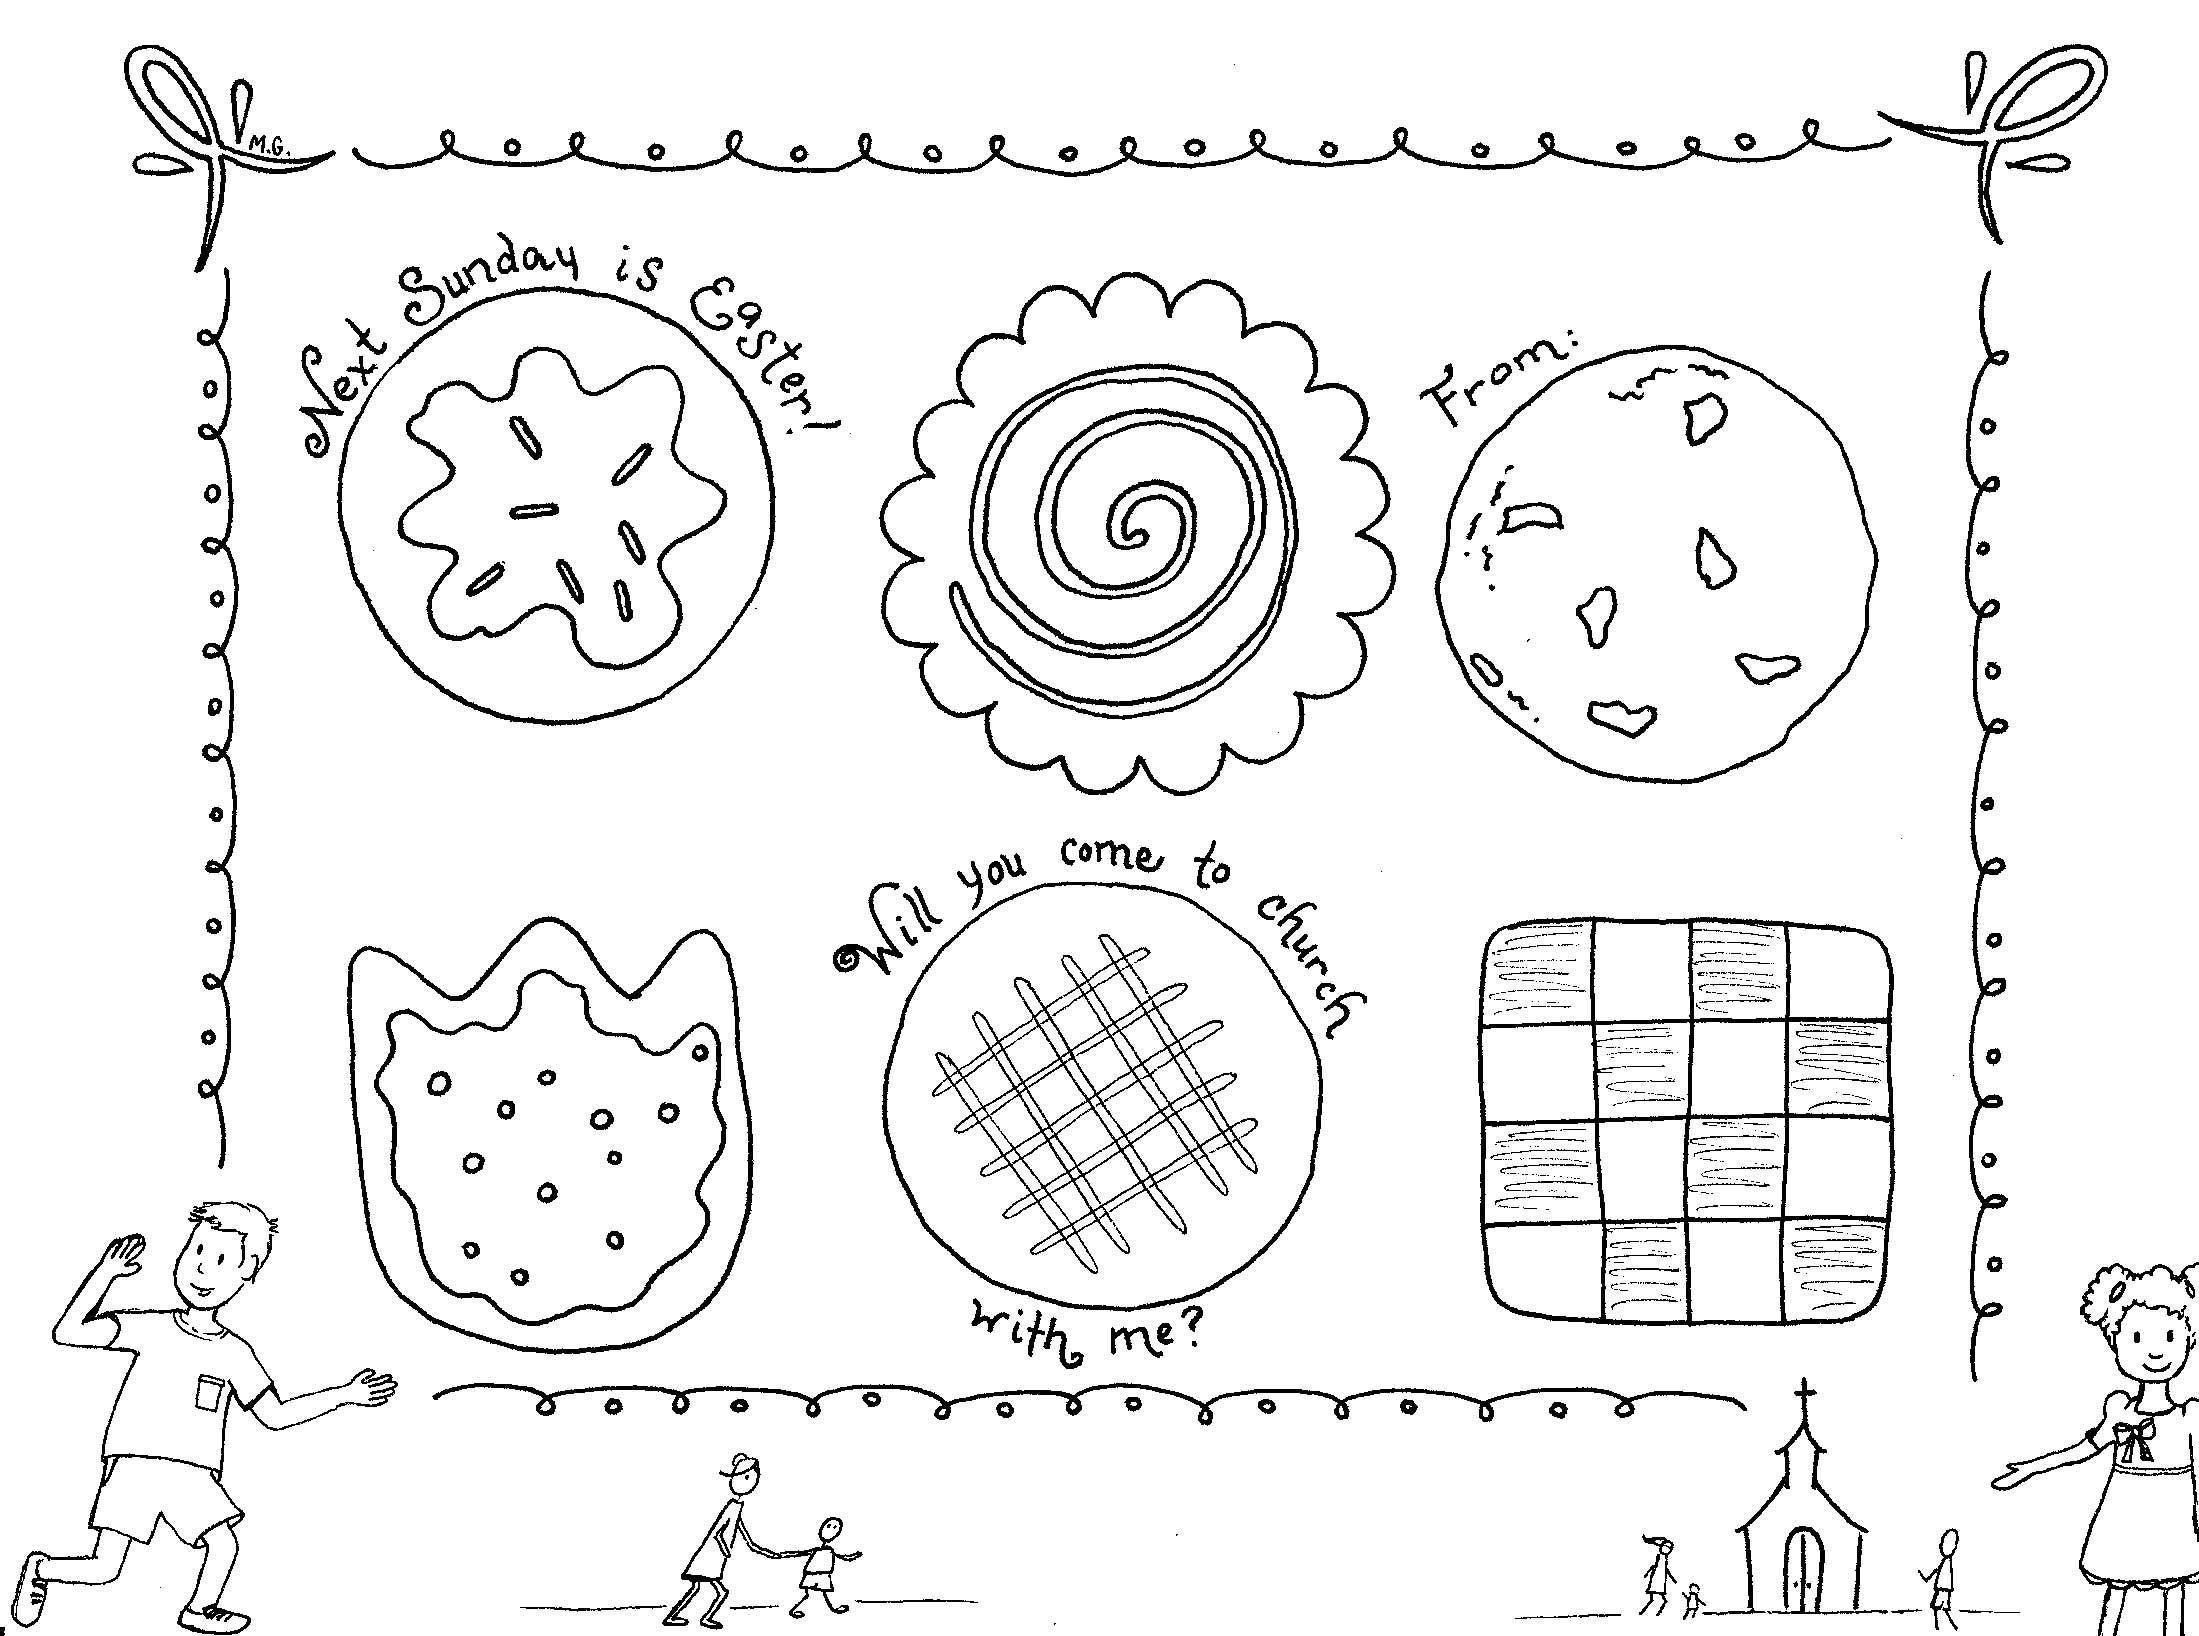 Easter Sunday Invitation Coloring Pages Sojournkids